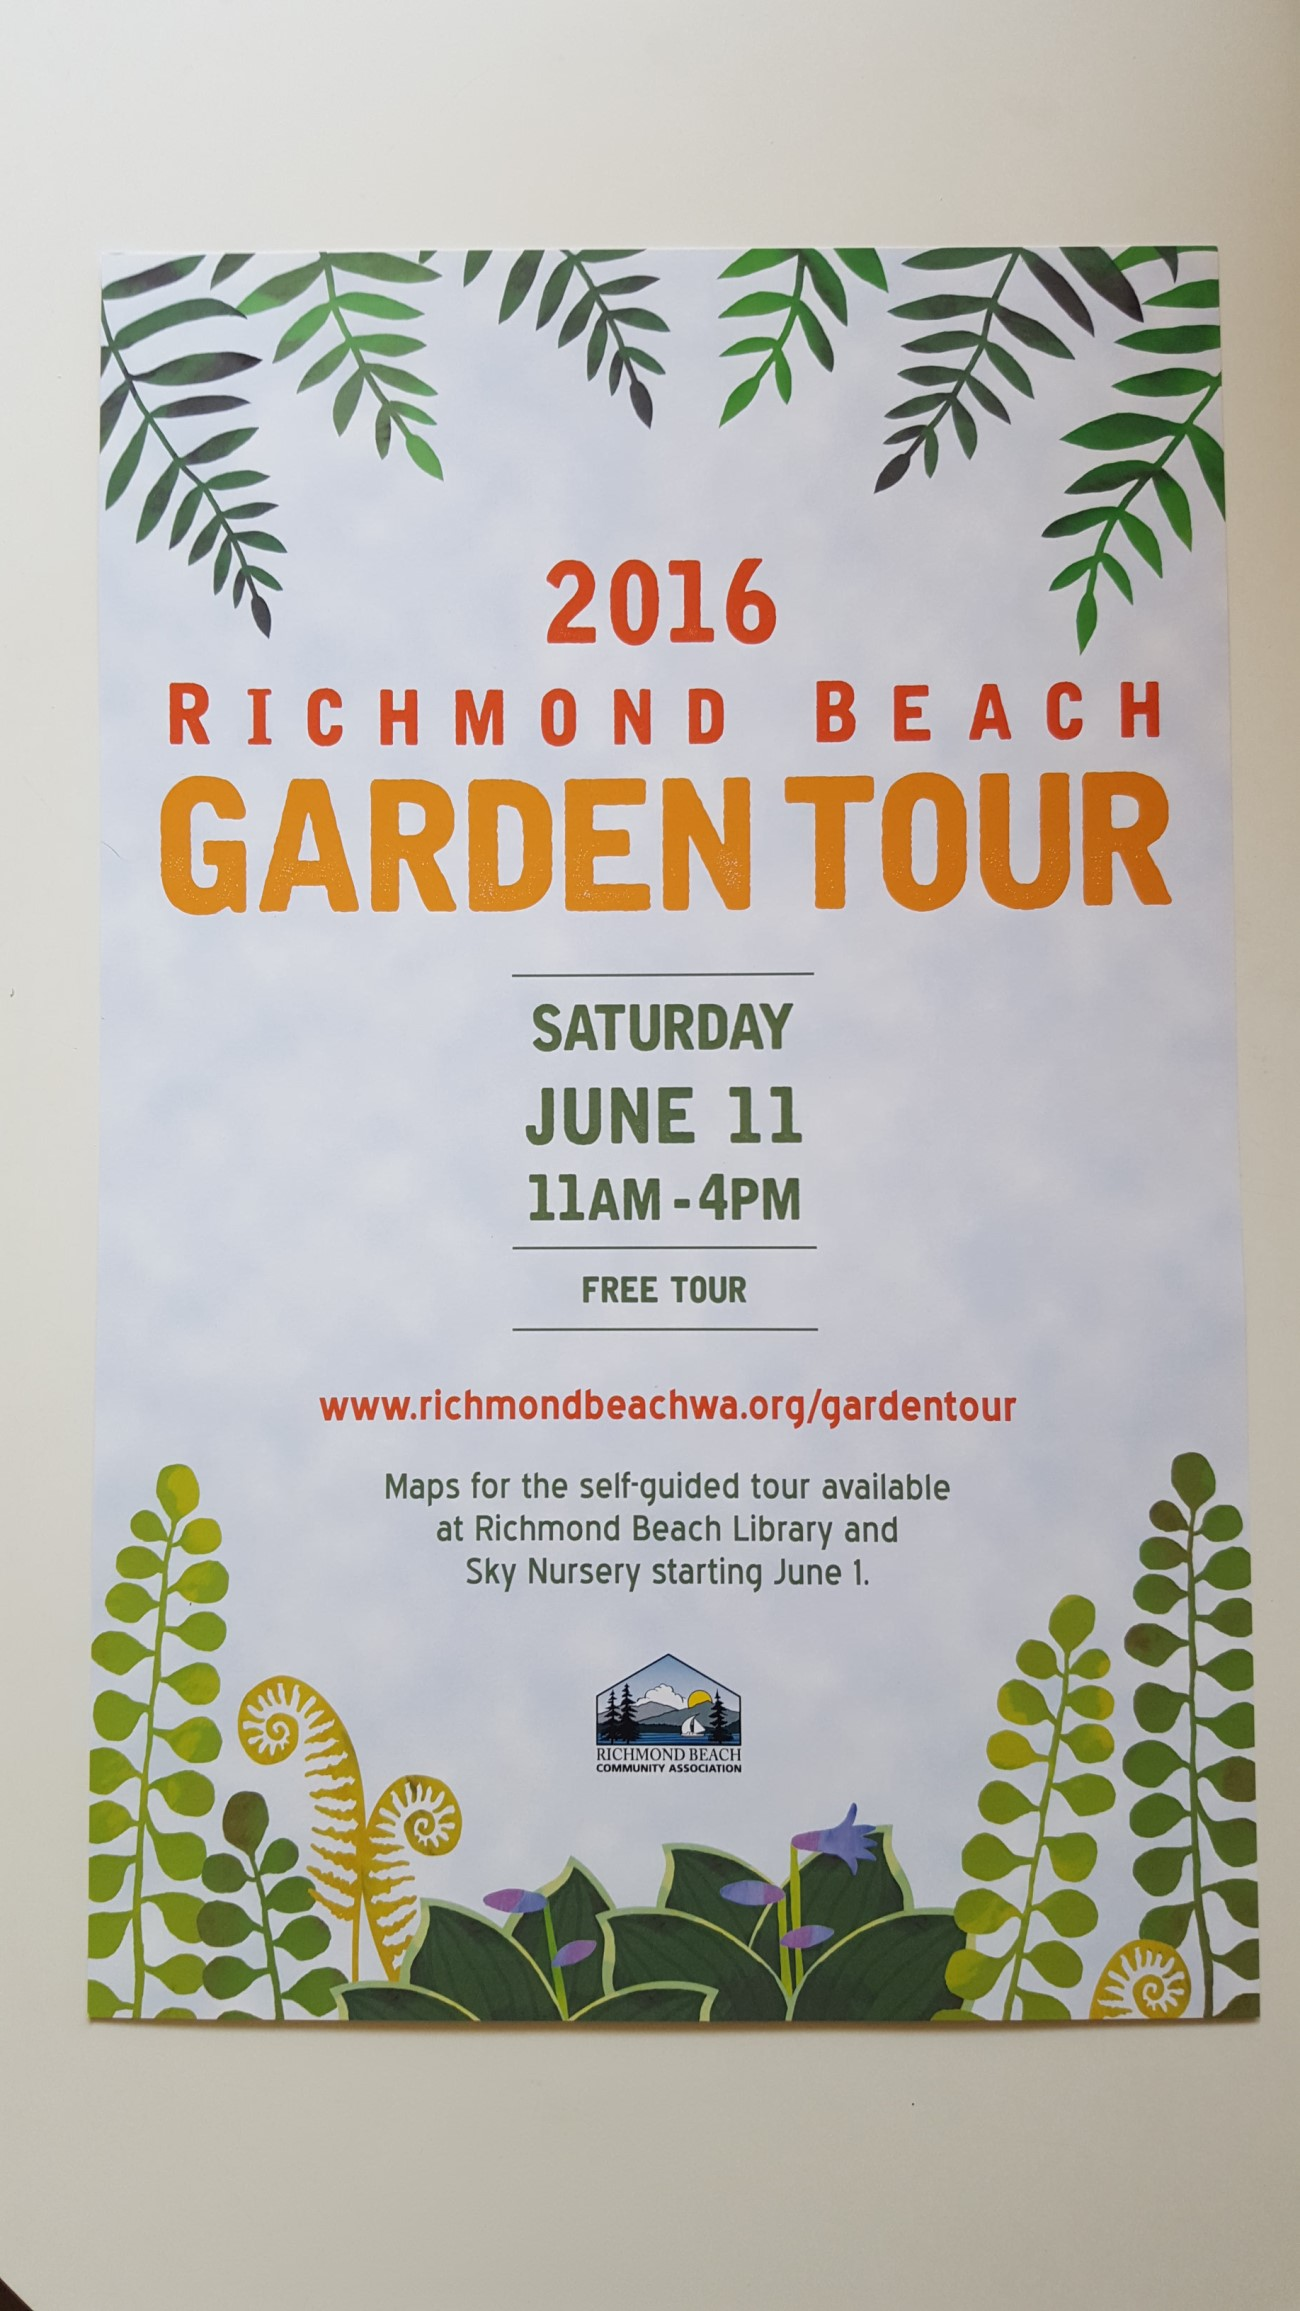 Photo: Garden Tour poster by Yasuyo Dunnett